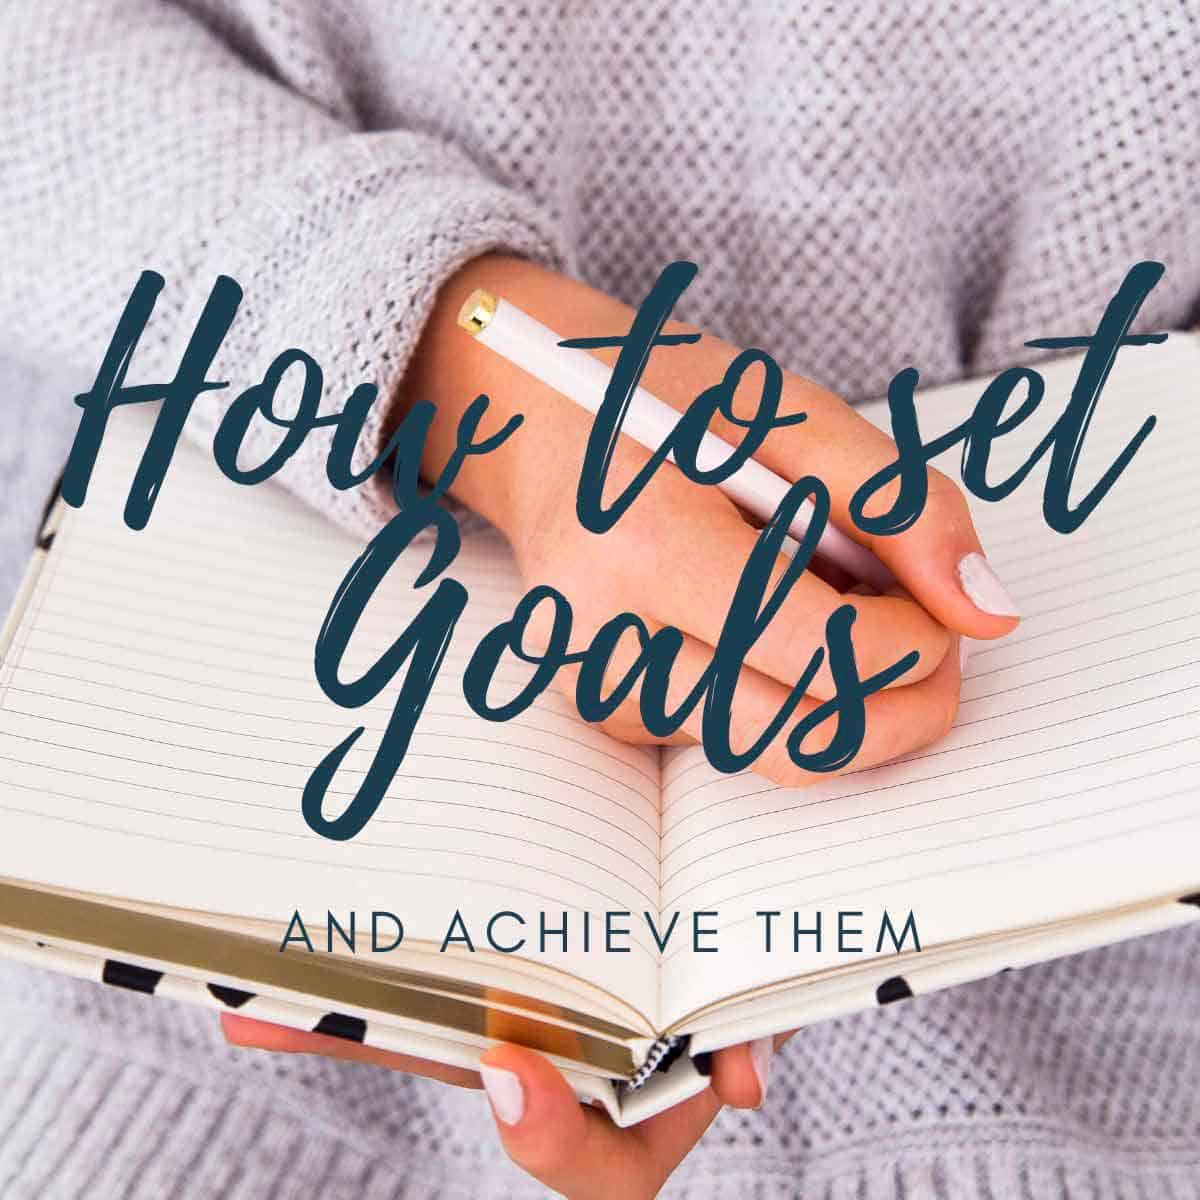 How to set goals text with book background